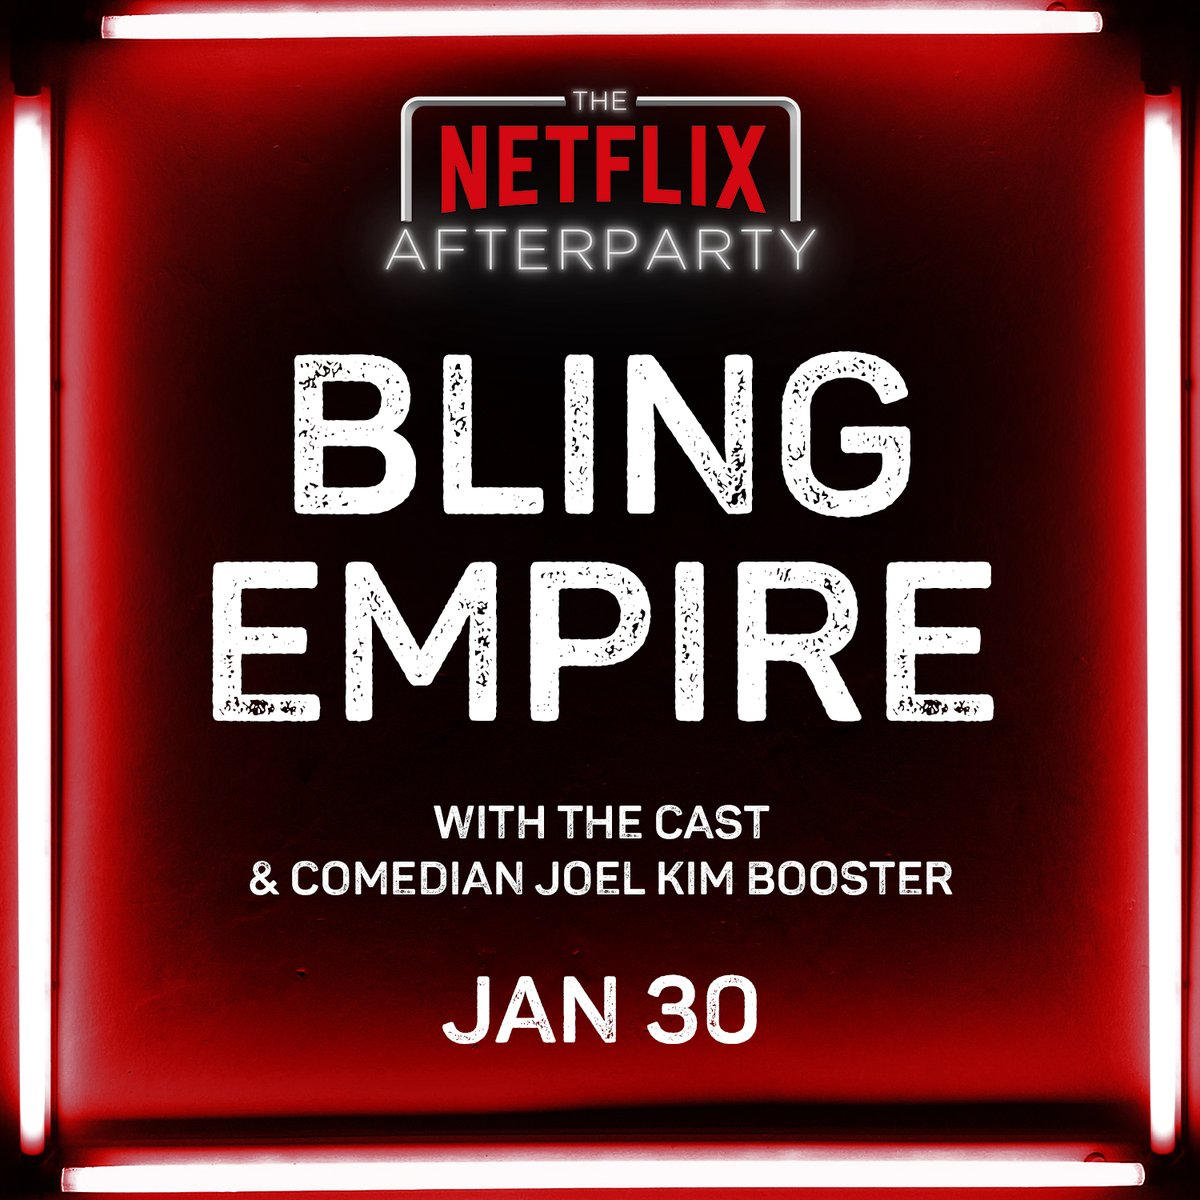 The Netflix Afterparty is BACK, this time with the cast of Bling Empire and comedian @ihatejoelkim. Coming January 30th!